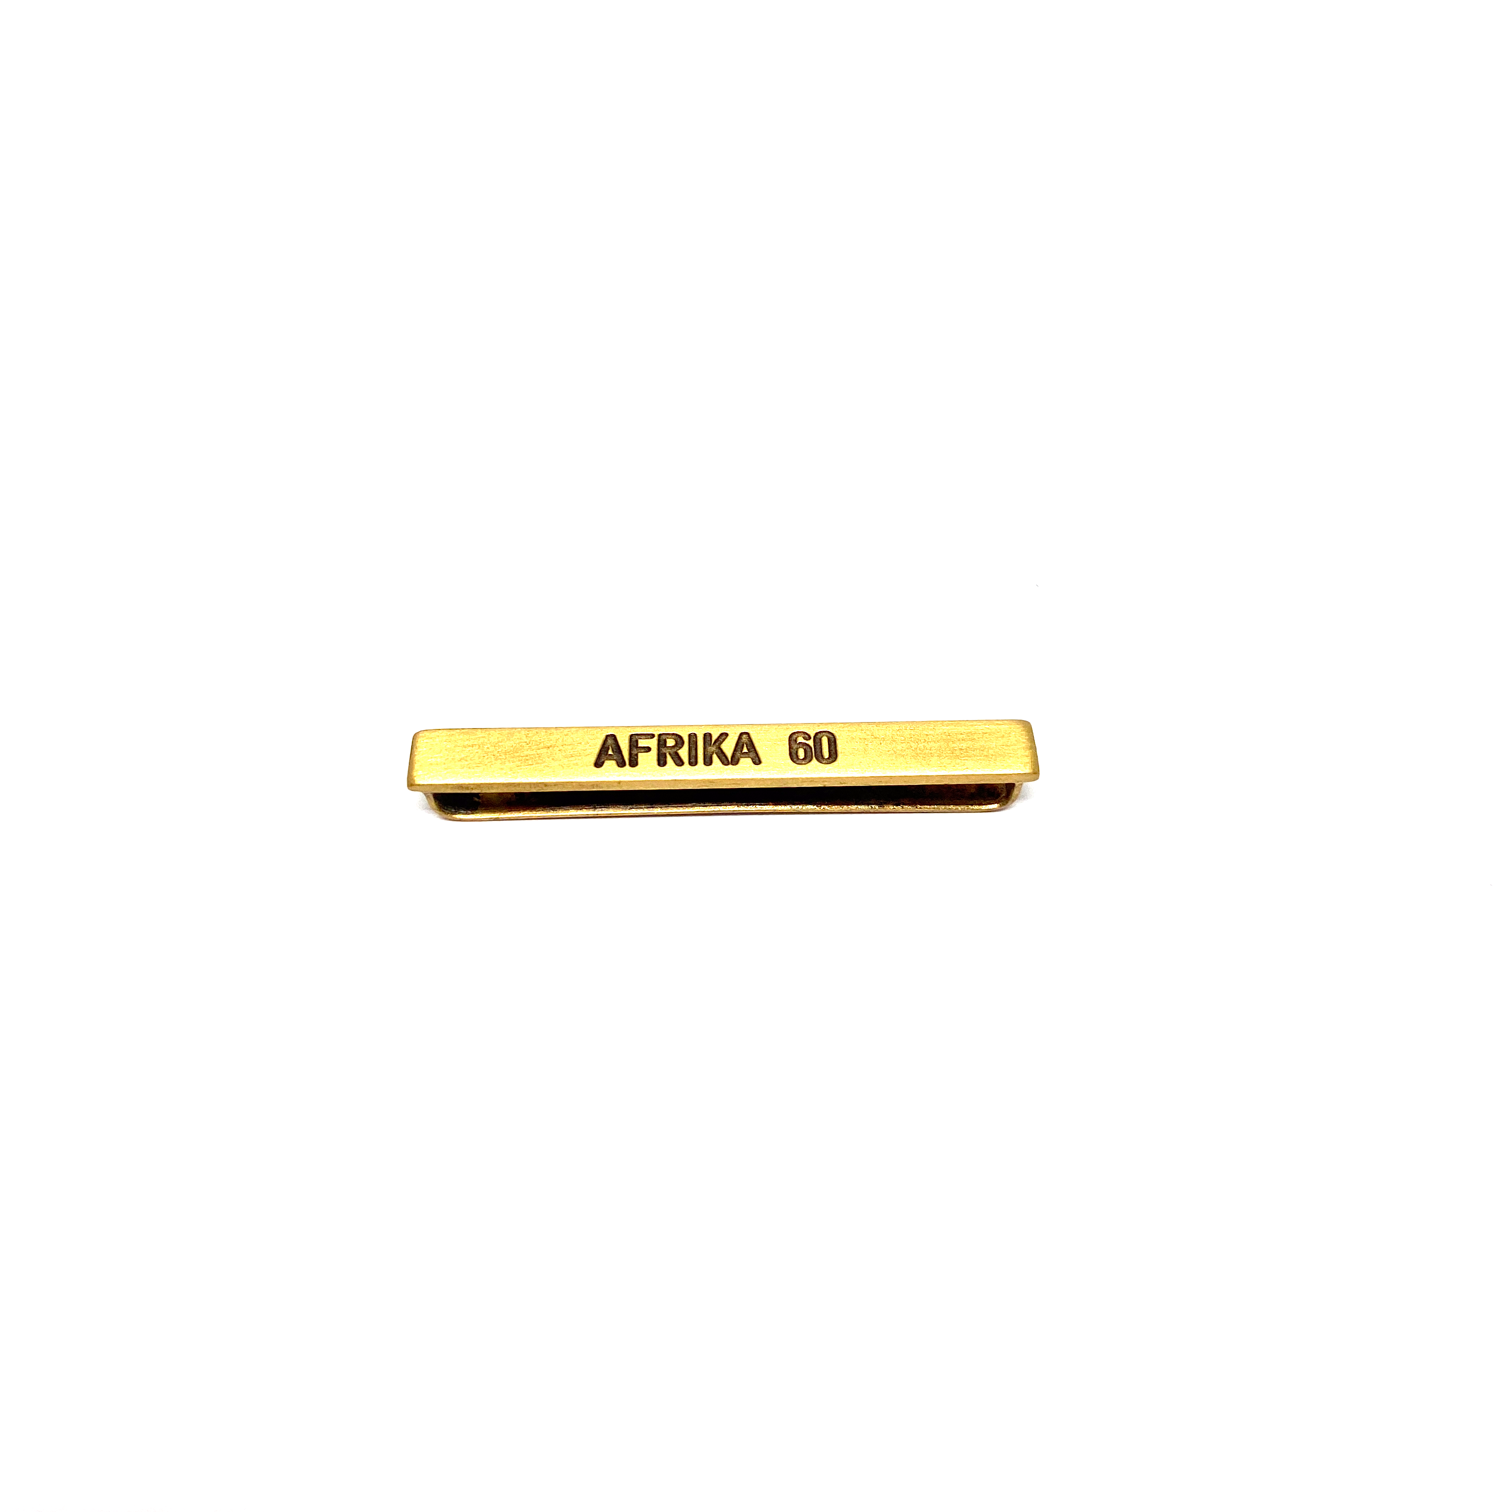 Bar Afrika 60 for military medals